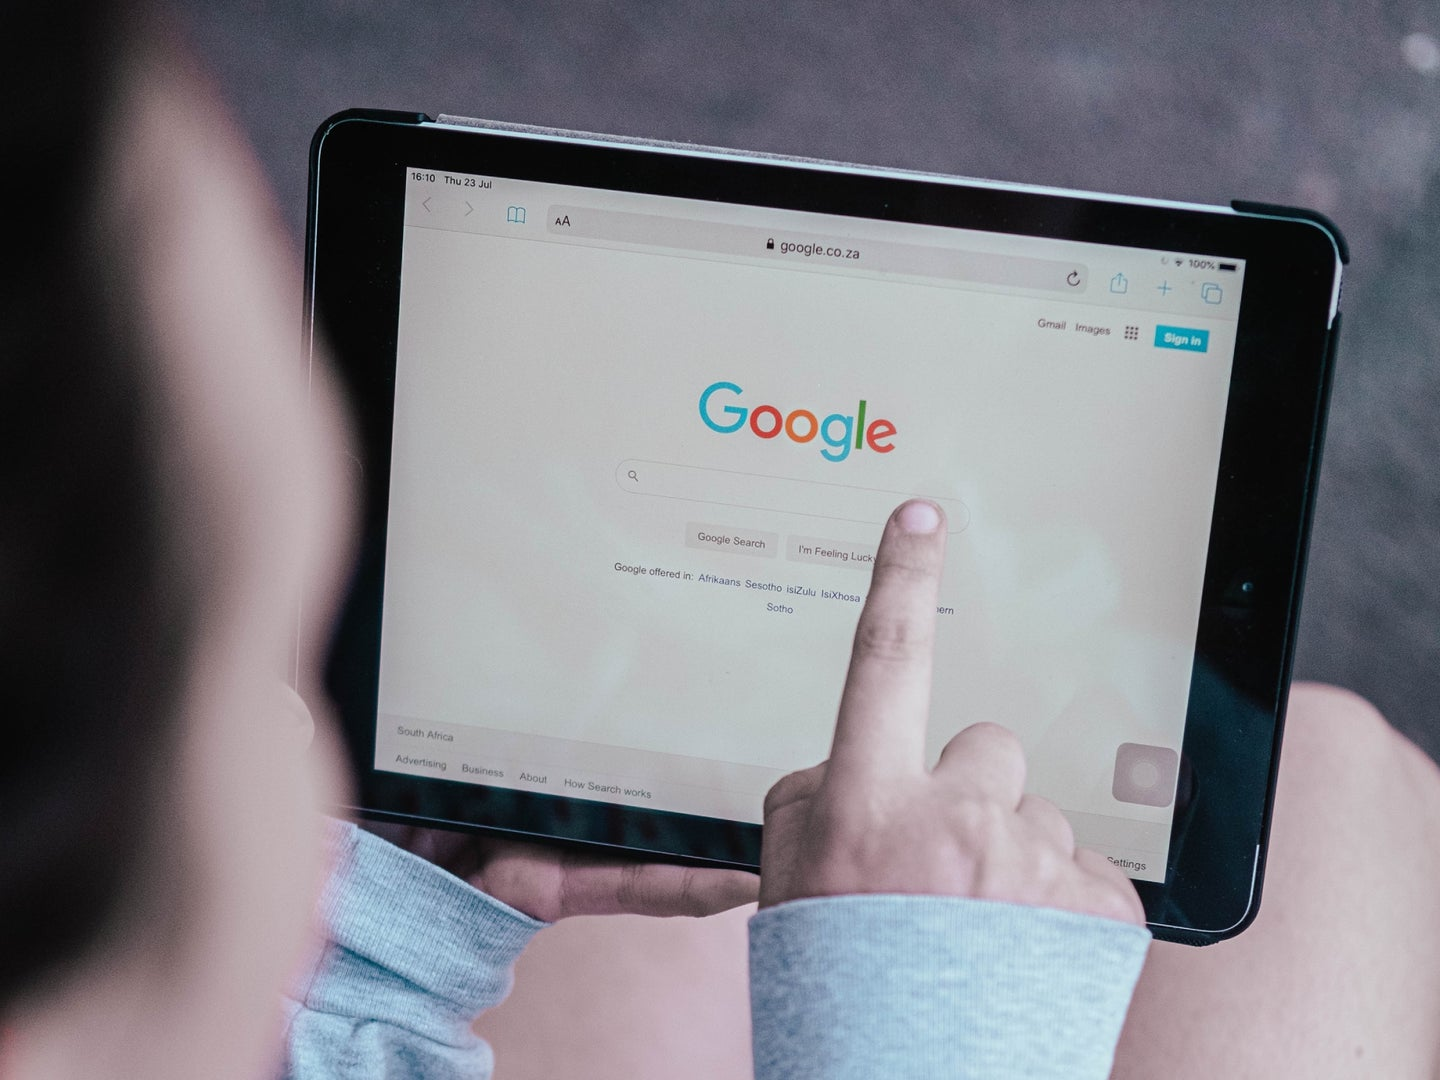 a person using the Google search engine on a tablet